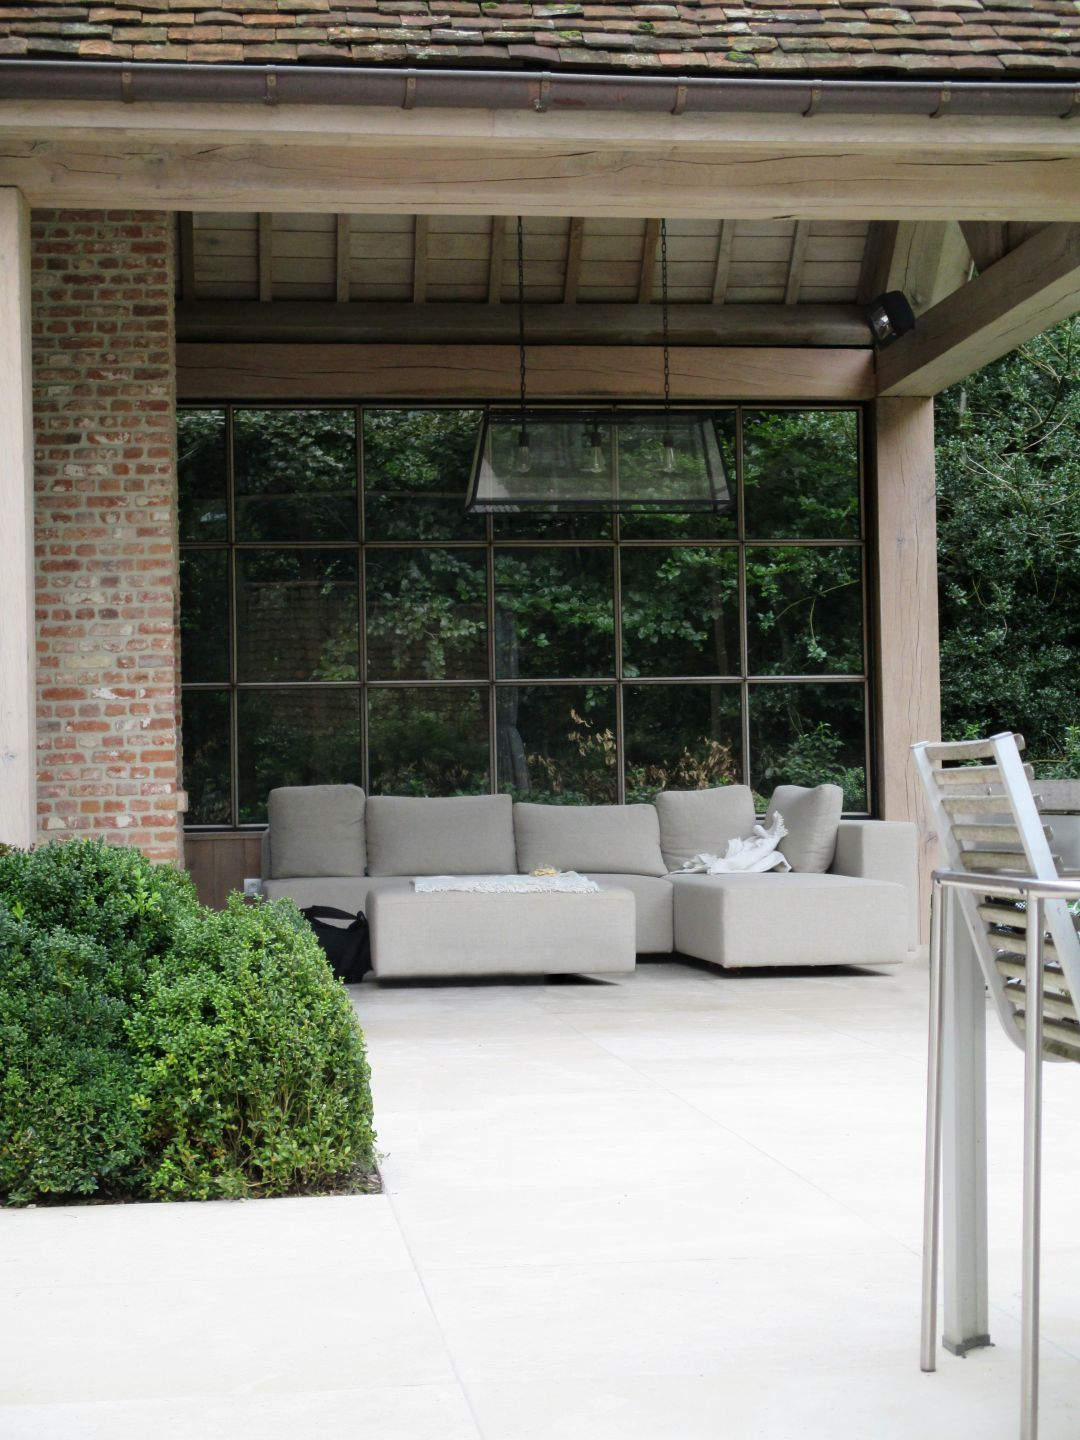 Best 25 Contemporary Houses Ideas On Pinterest: Best 25+ Contemporary Outdoor Sofas Ideas On Pinterest